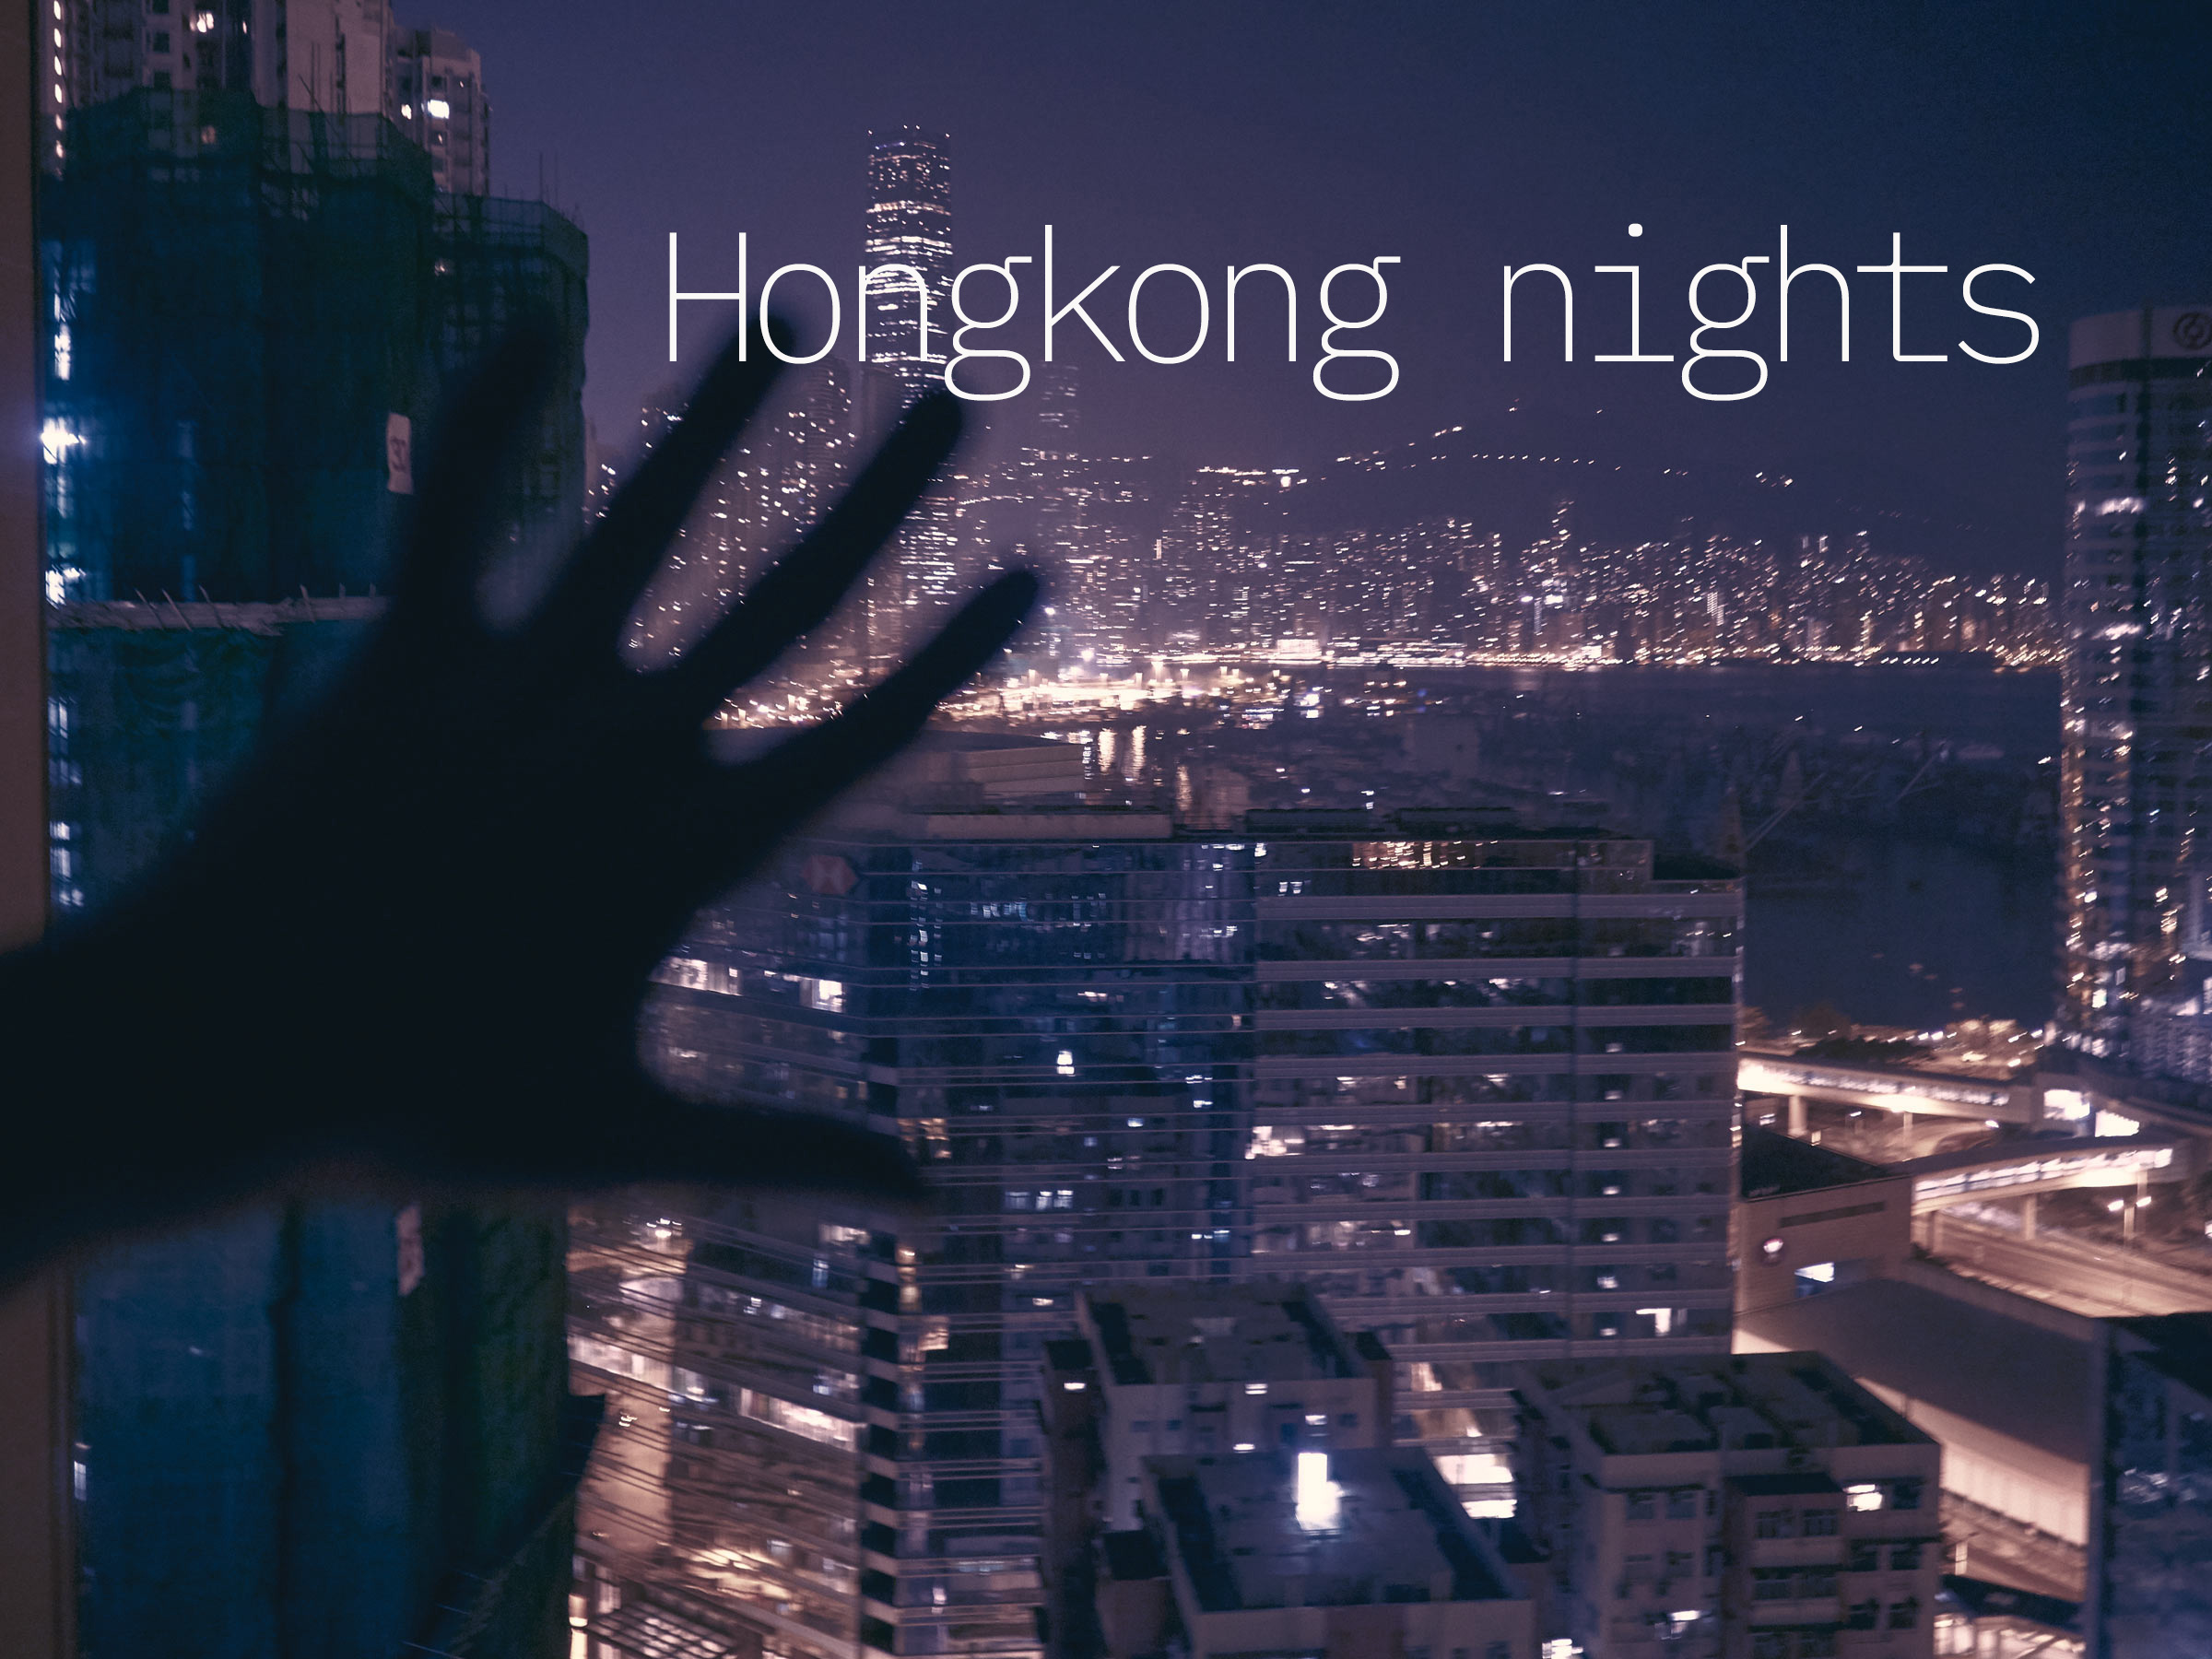 18_02_Hongkong_nights_mit_text